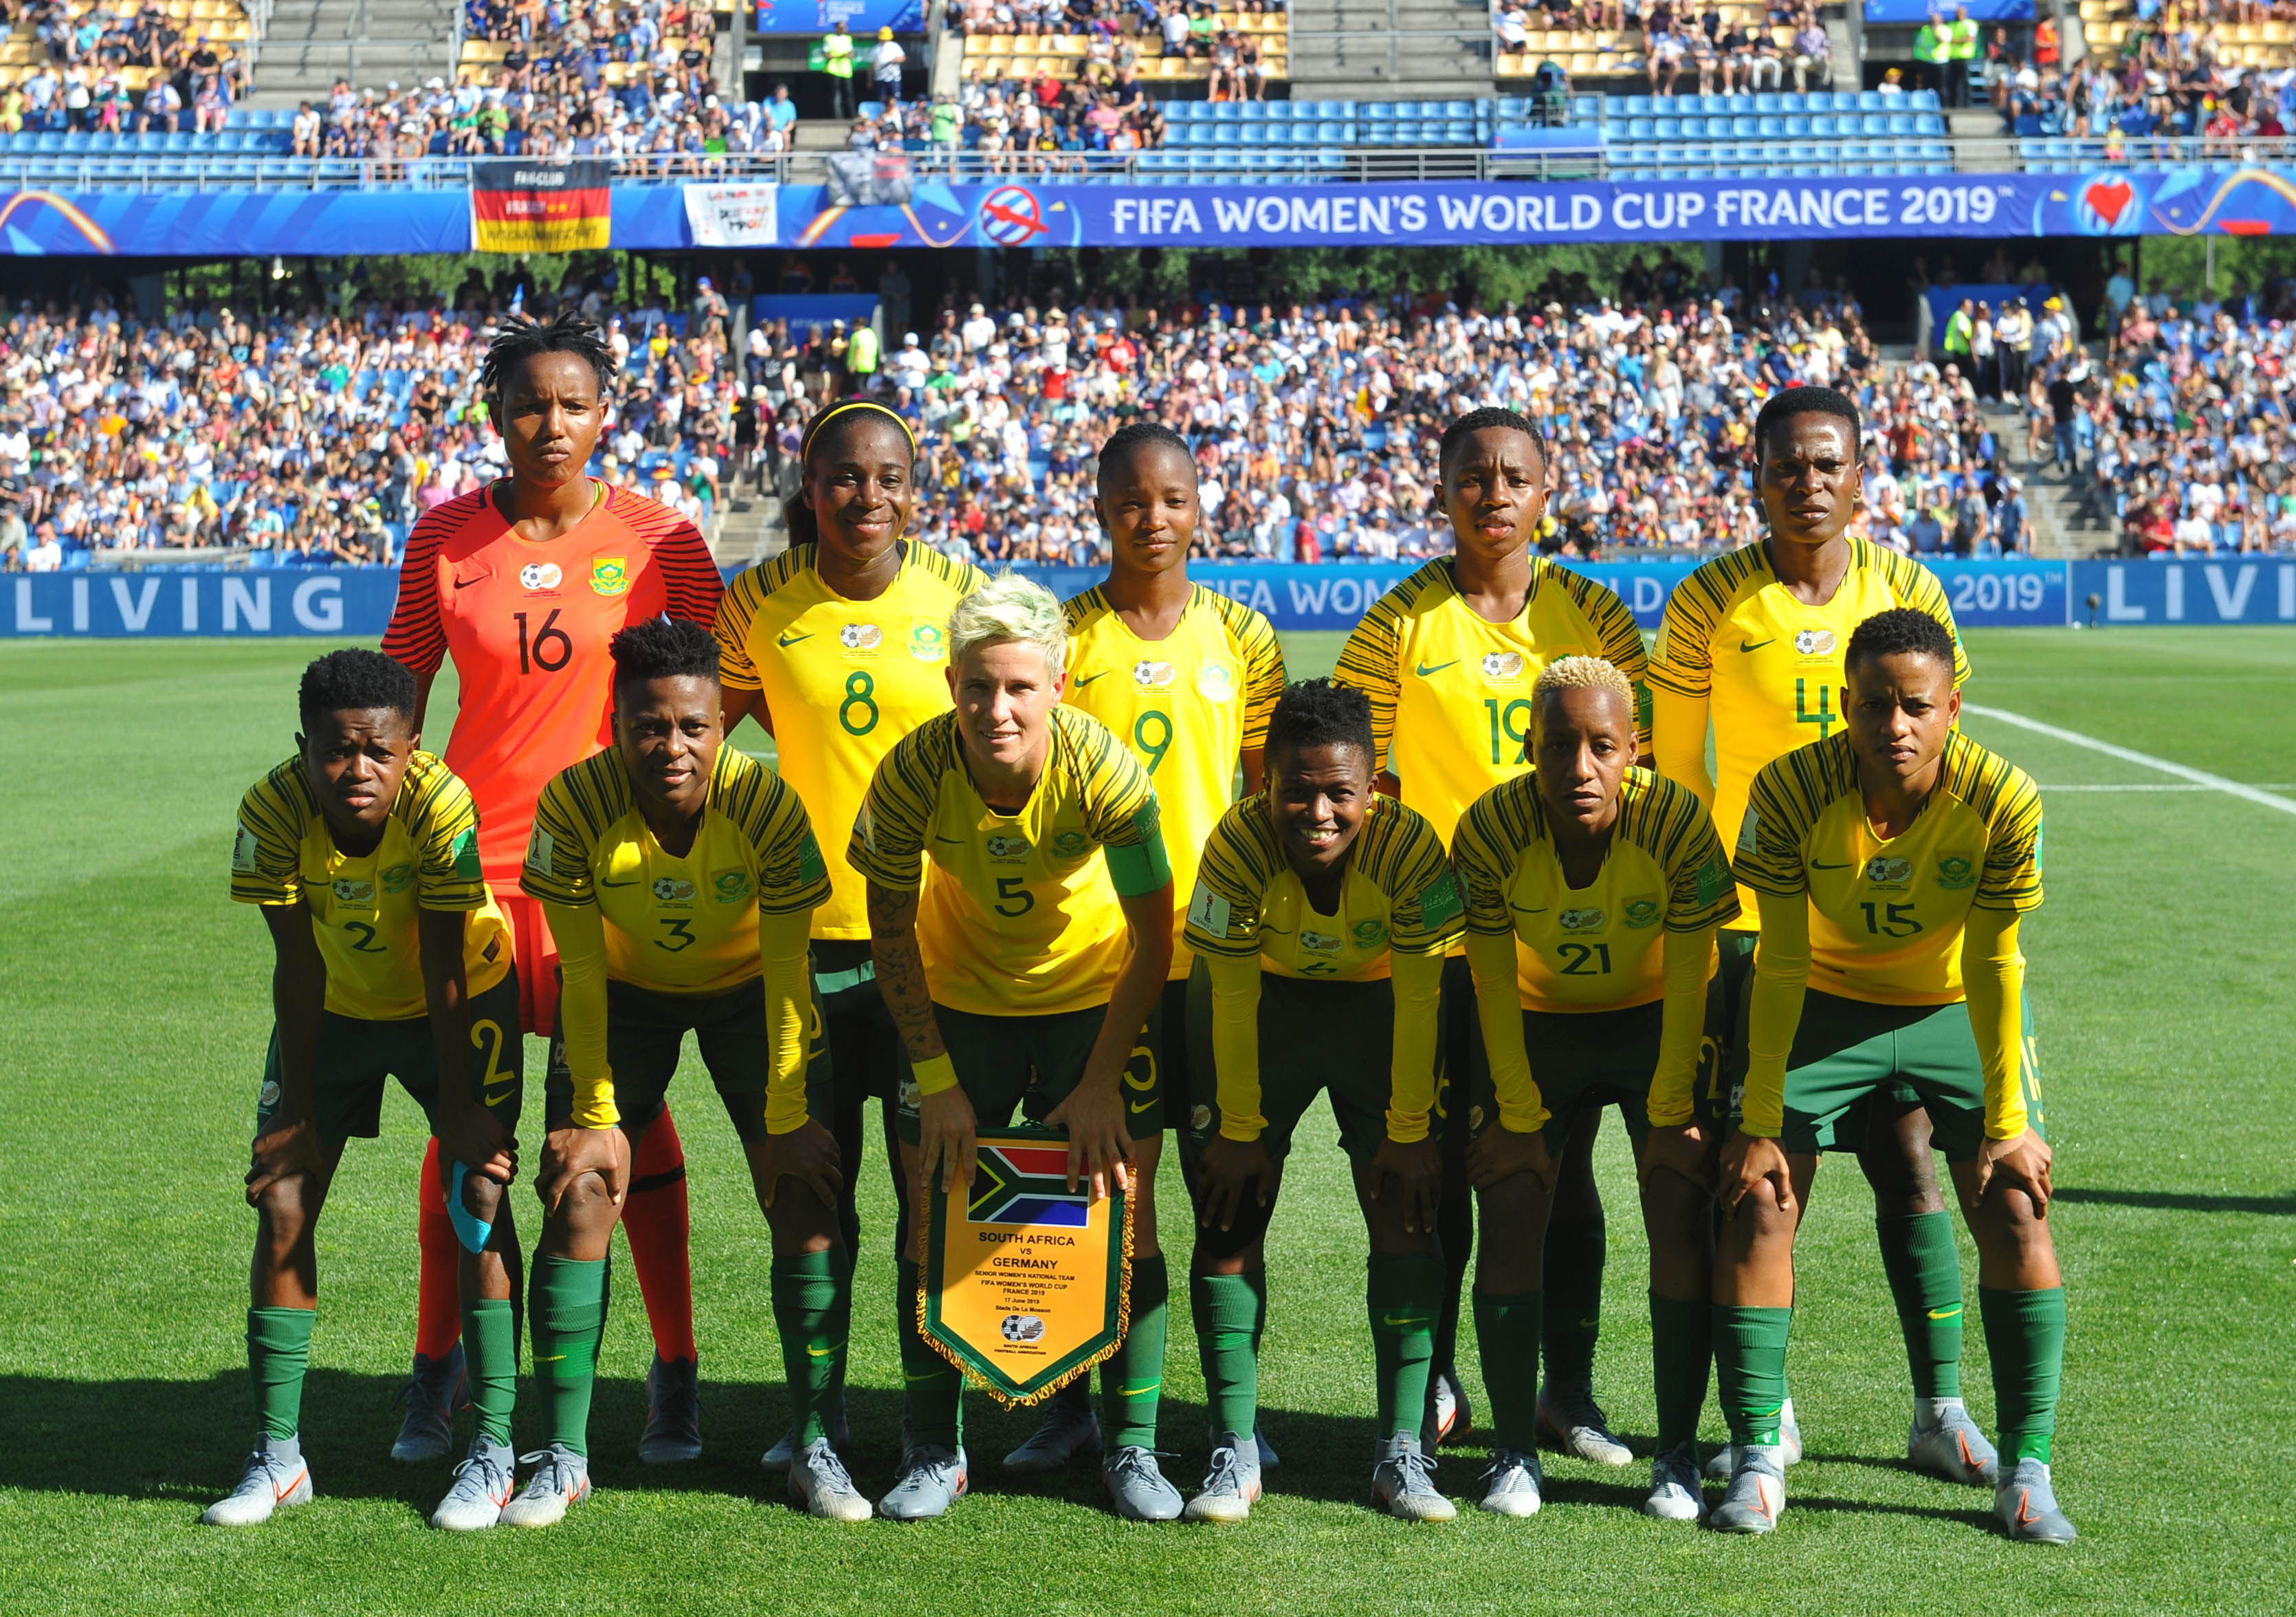 Banyana Banyana vs Germany FIFA WC 2019